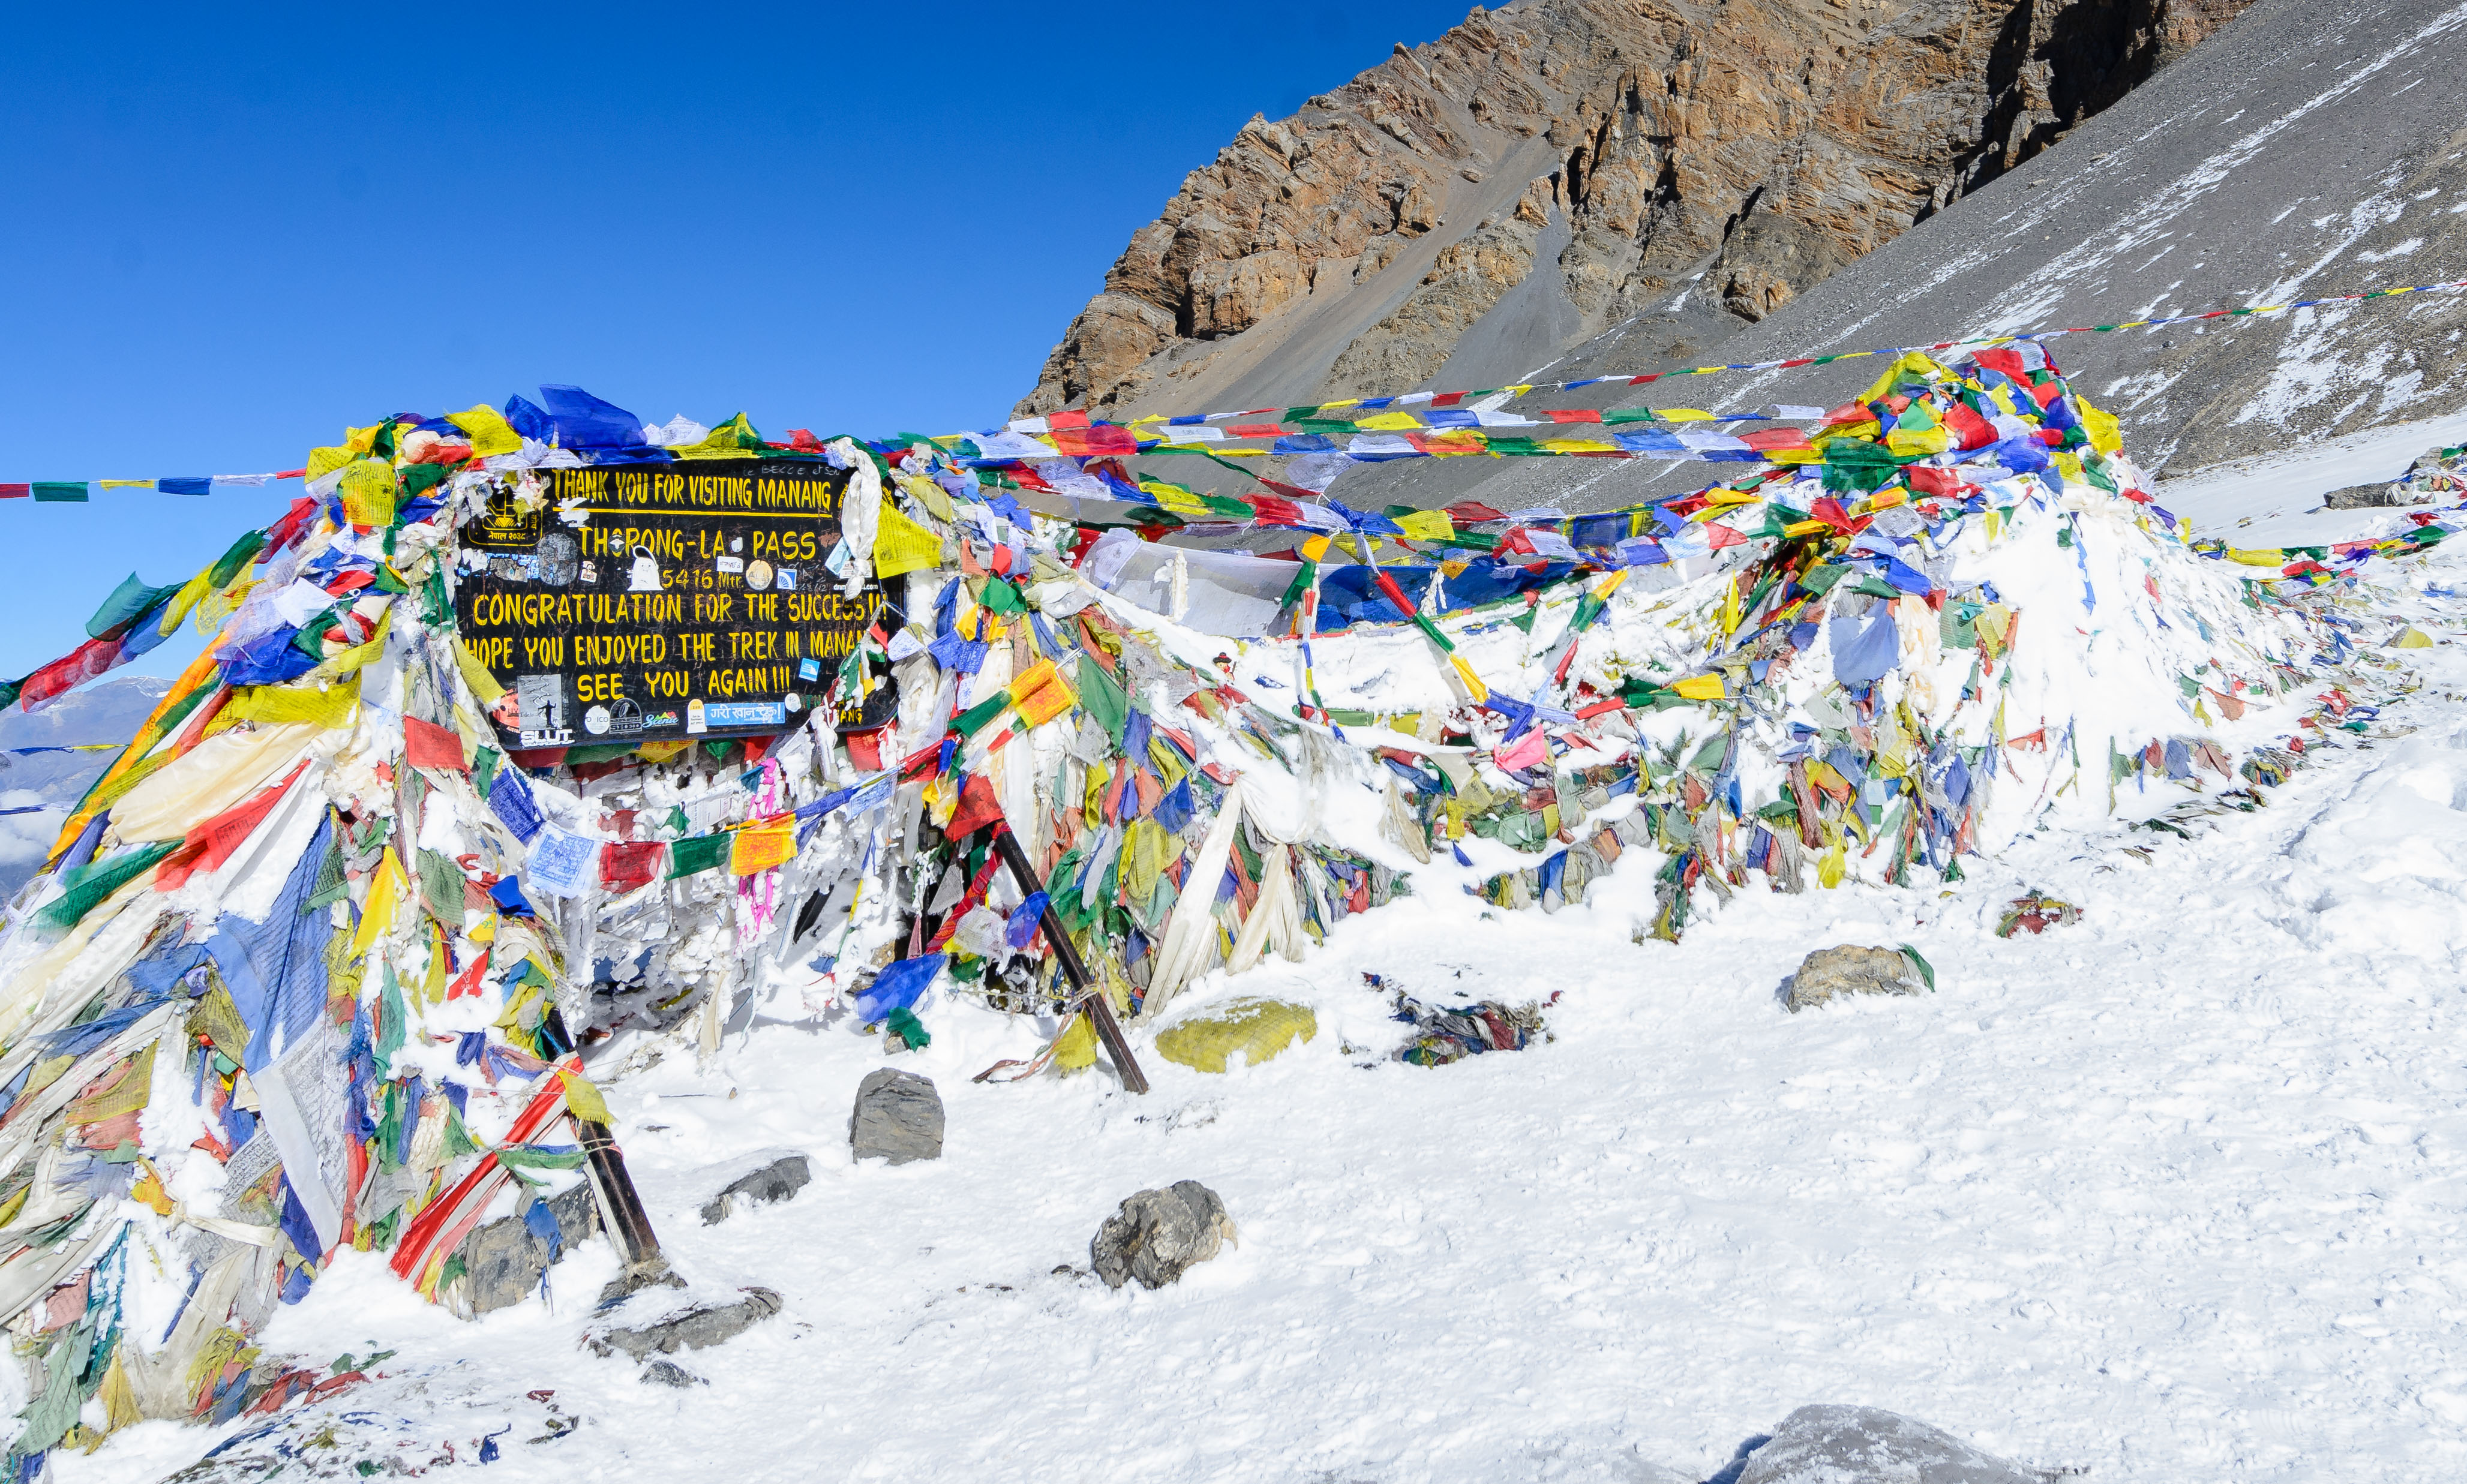 Thorang La Pass Resumes Welcoming Trekkers After Local's Initiation